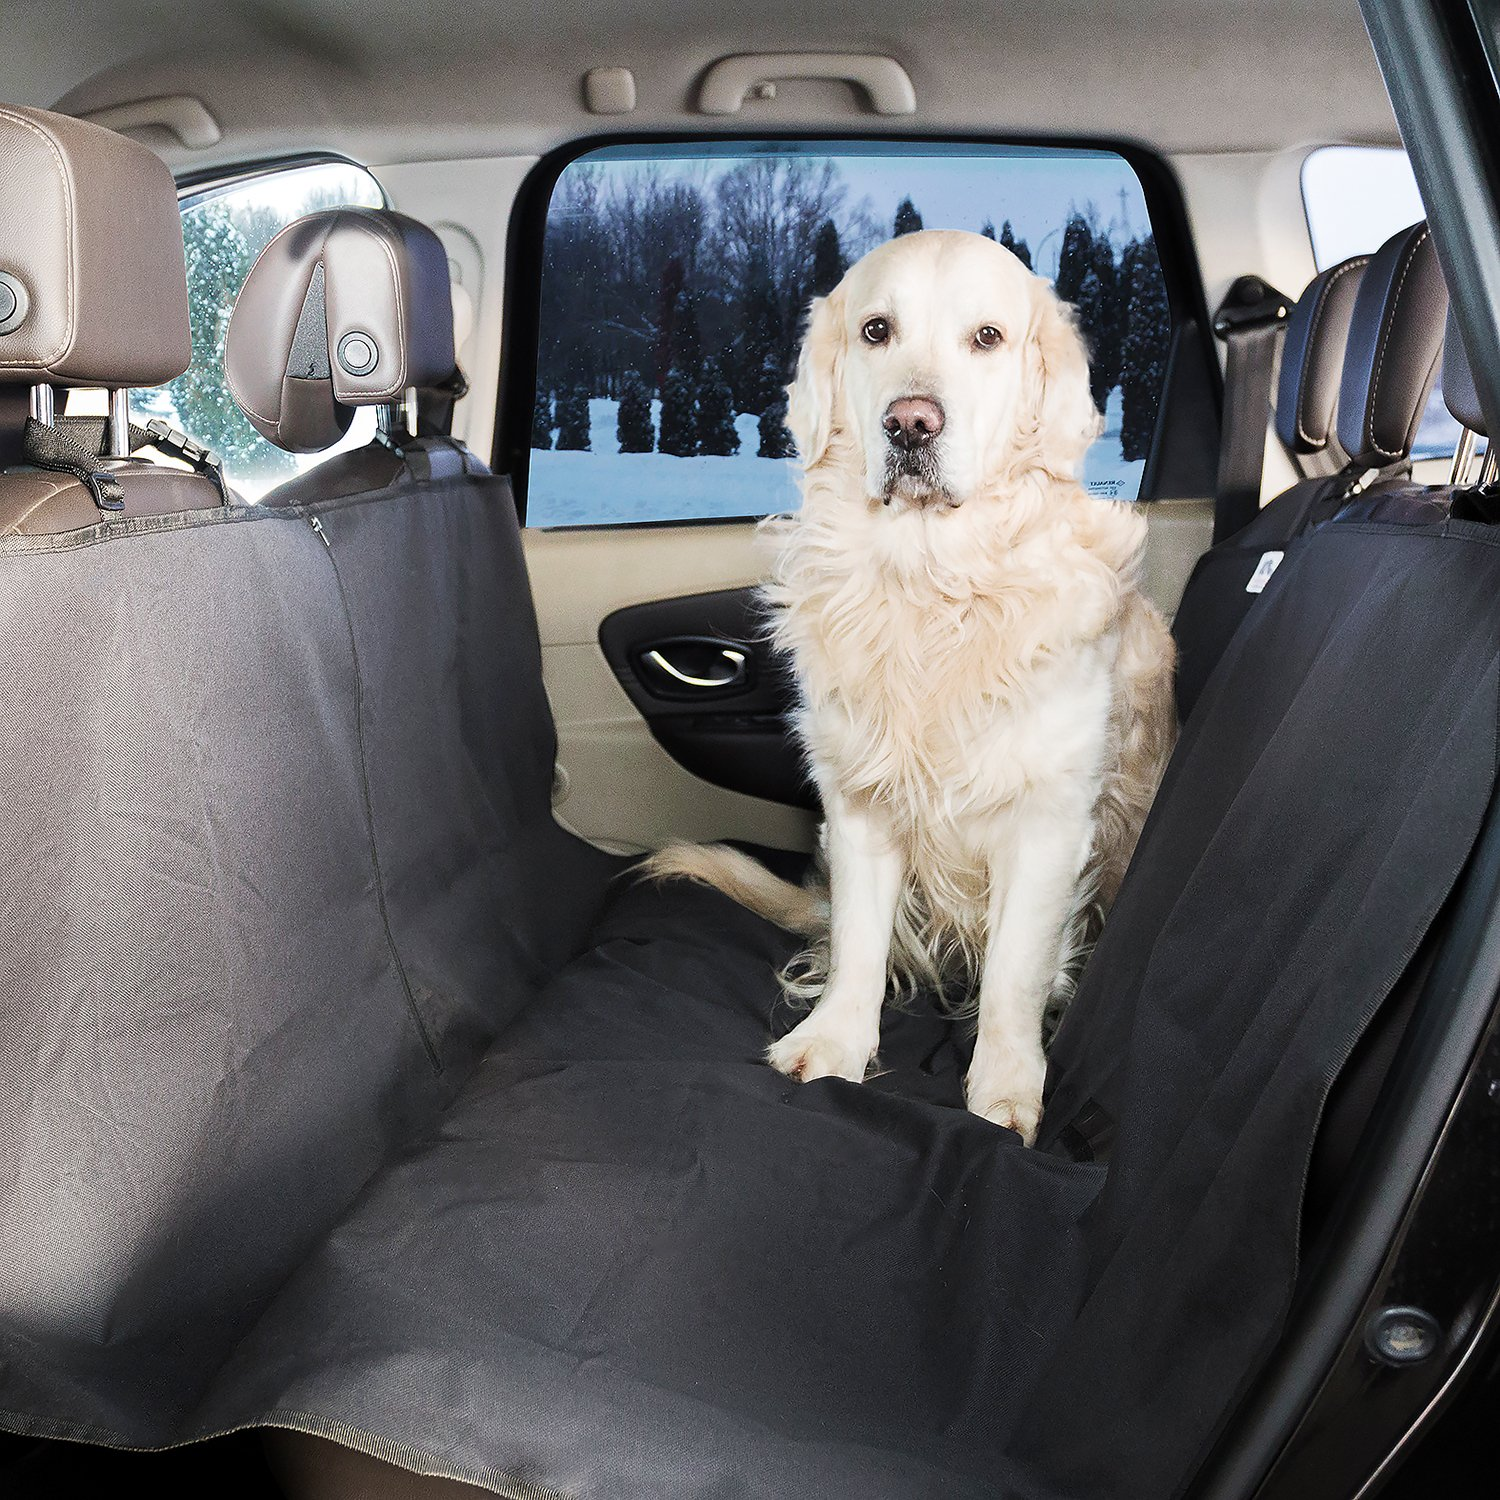 Dog Car Seat Cover Hammock Non-Slip Anti-Dirt Waterproof Protection for Most